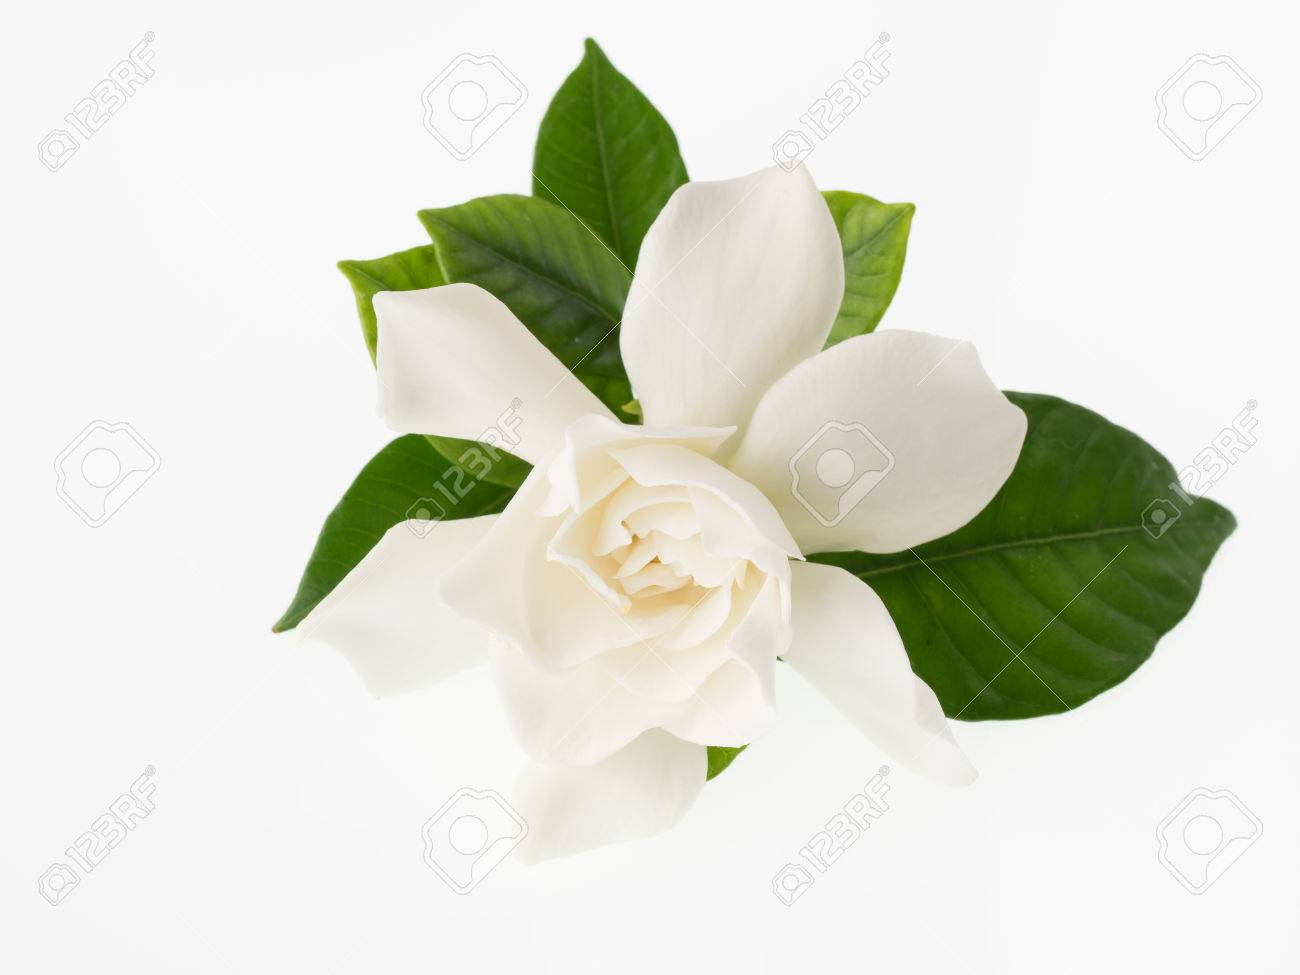 gardenia flowers stock photos  pictures. royalty free gardenia, Natural flower